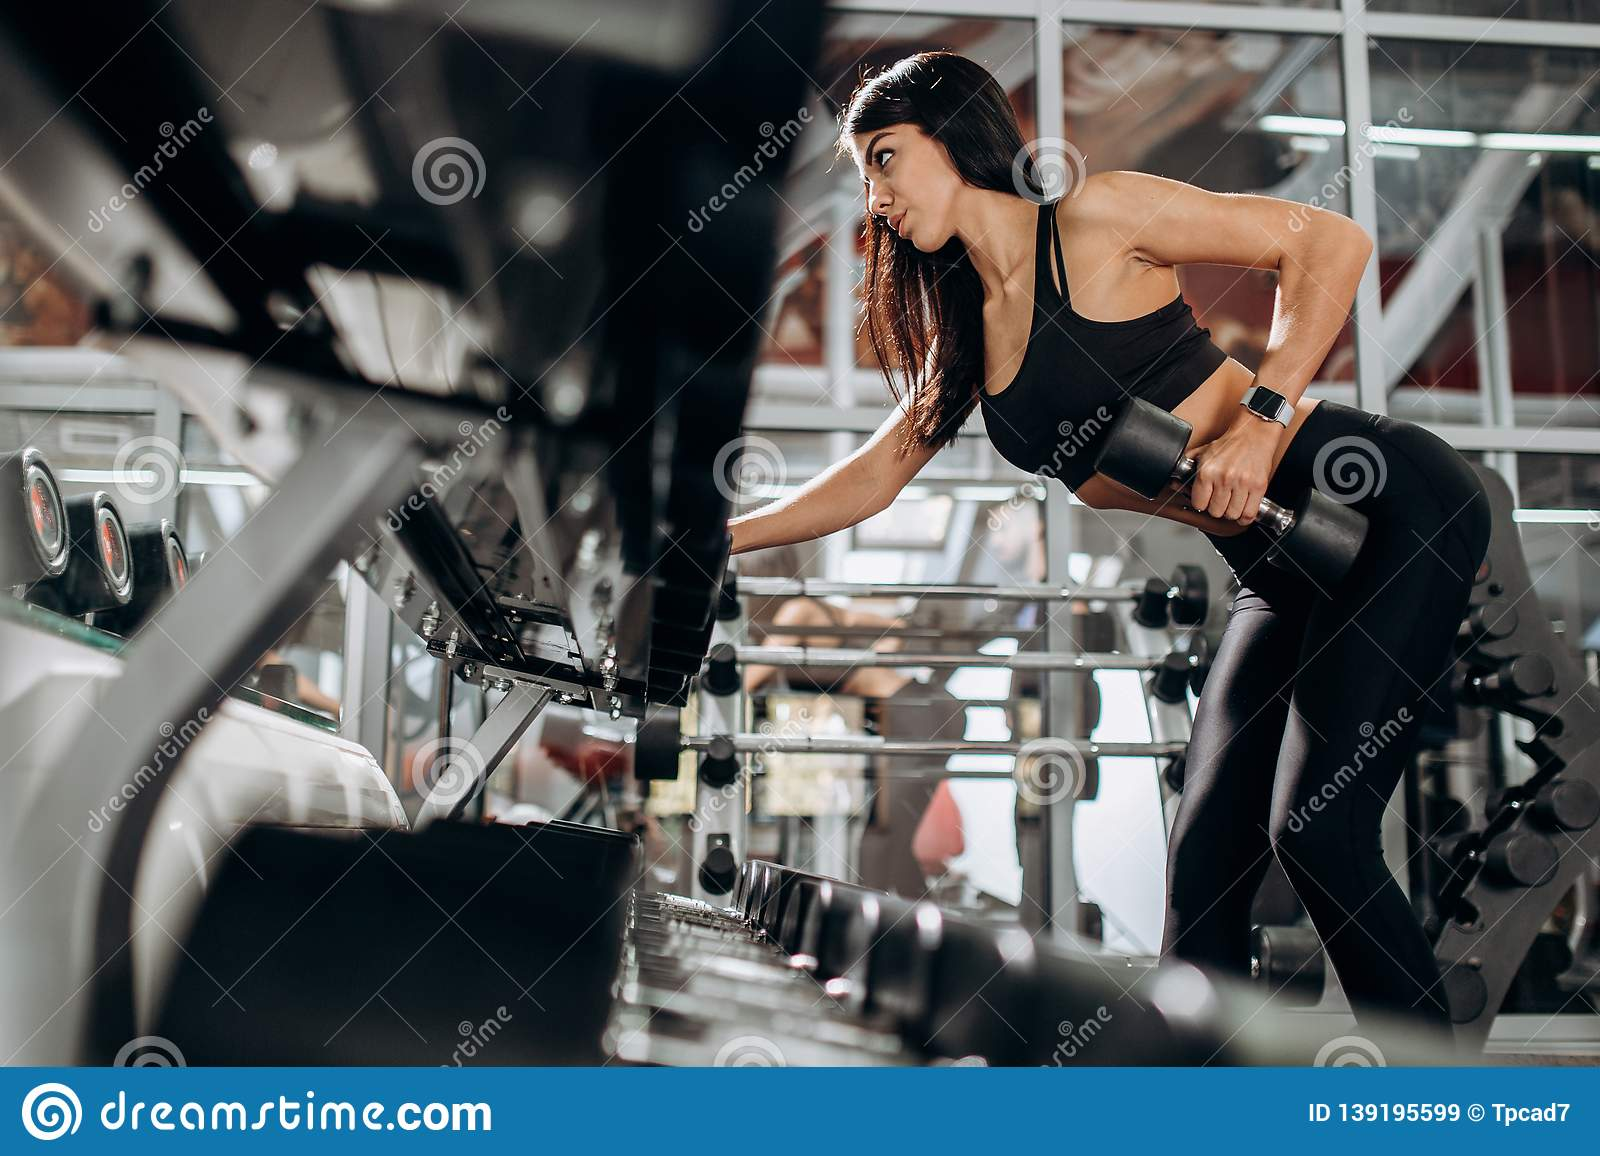 Slim girl dressed in black sport clothes is doing triceps exercise with dumbbell in the gym